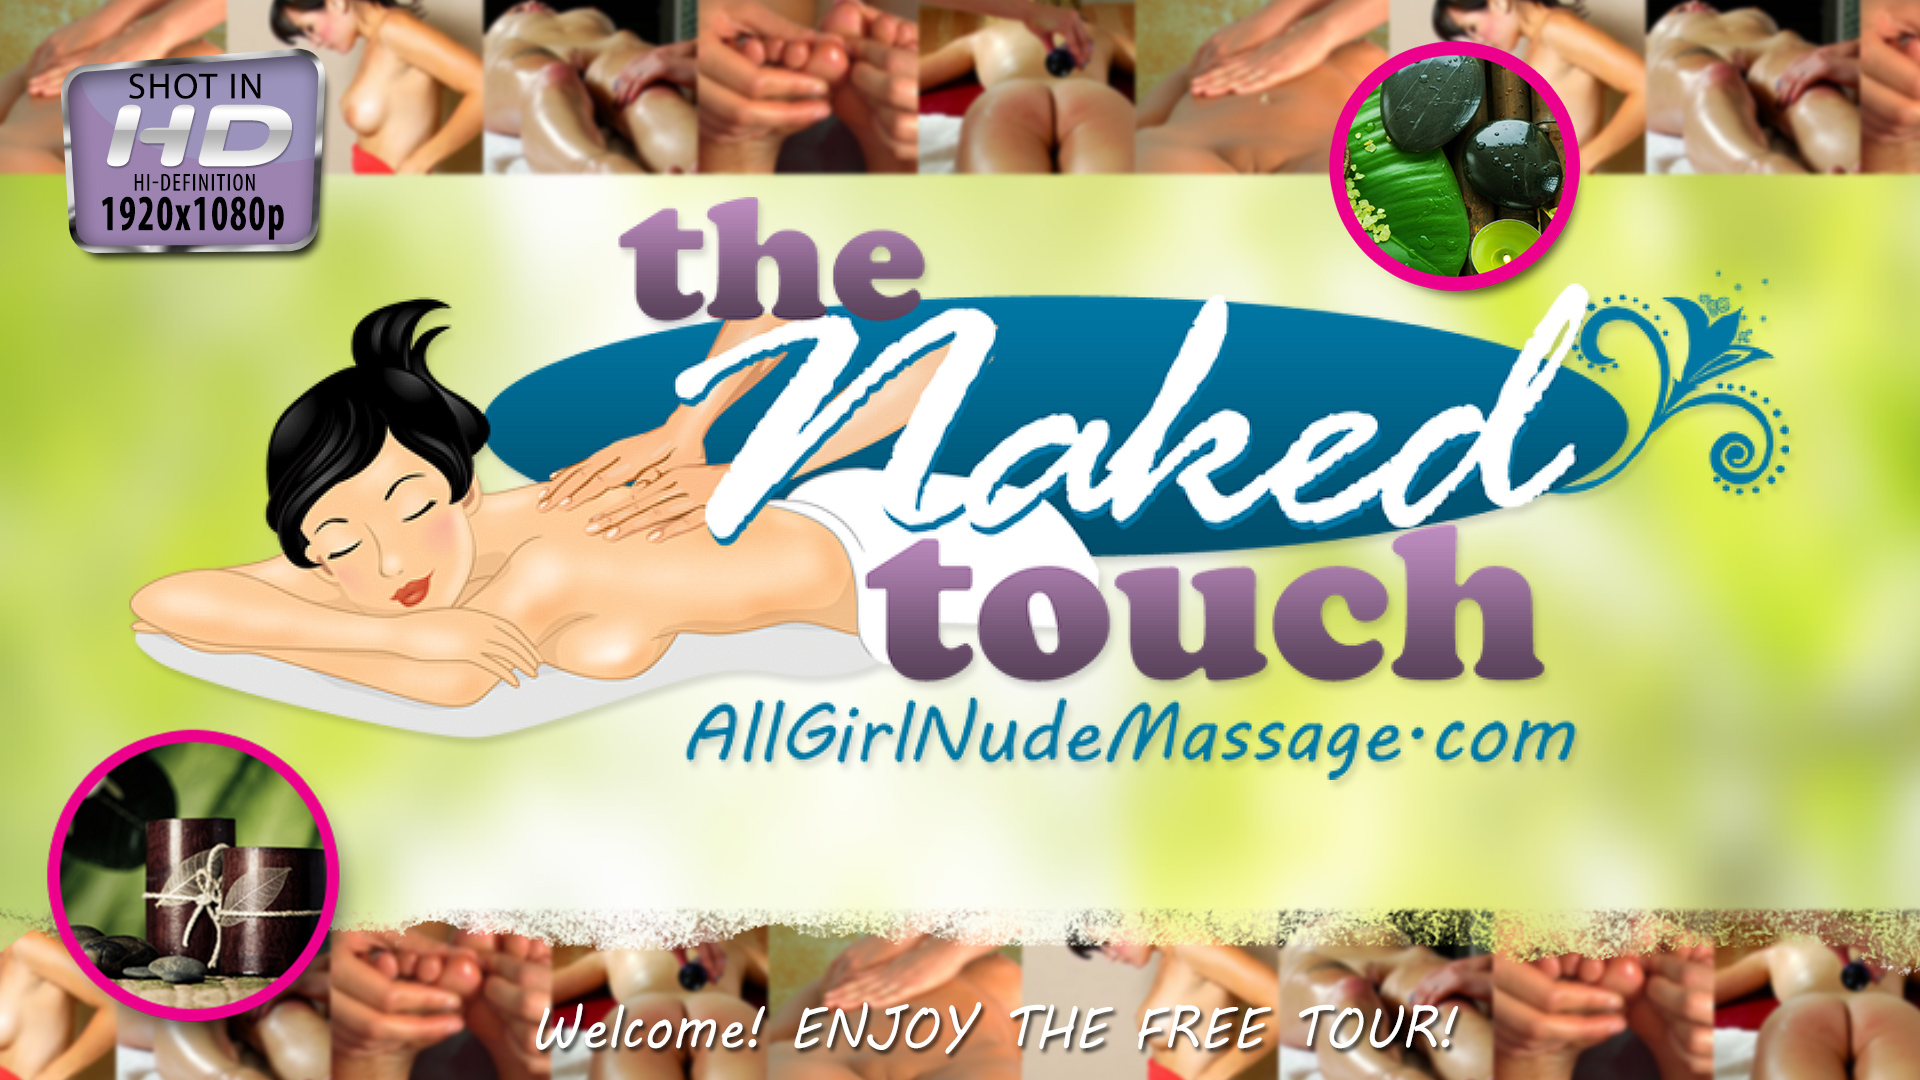 Welcome to AllGirlNudeMassage!